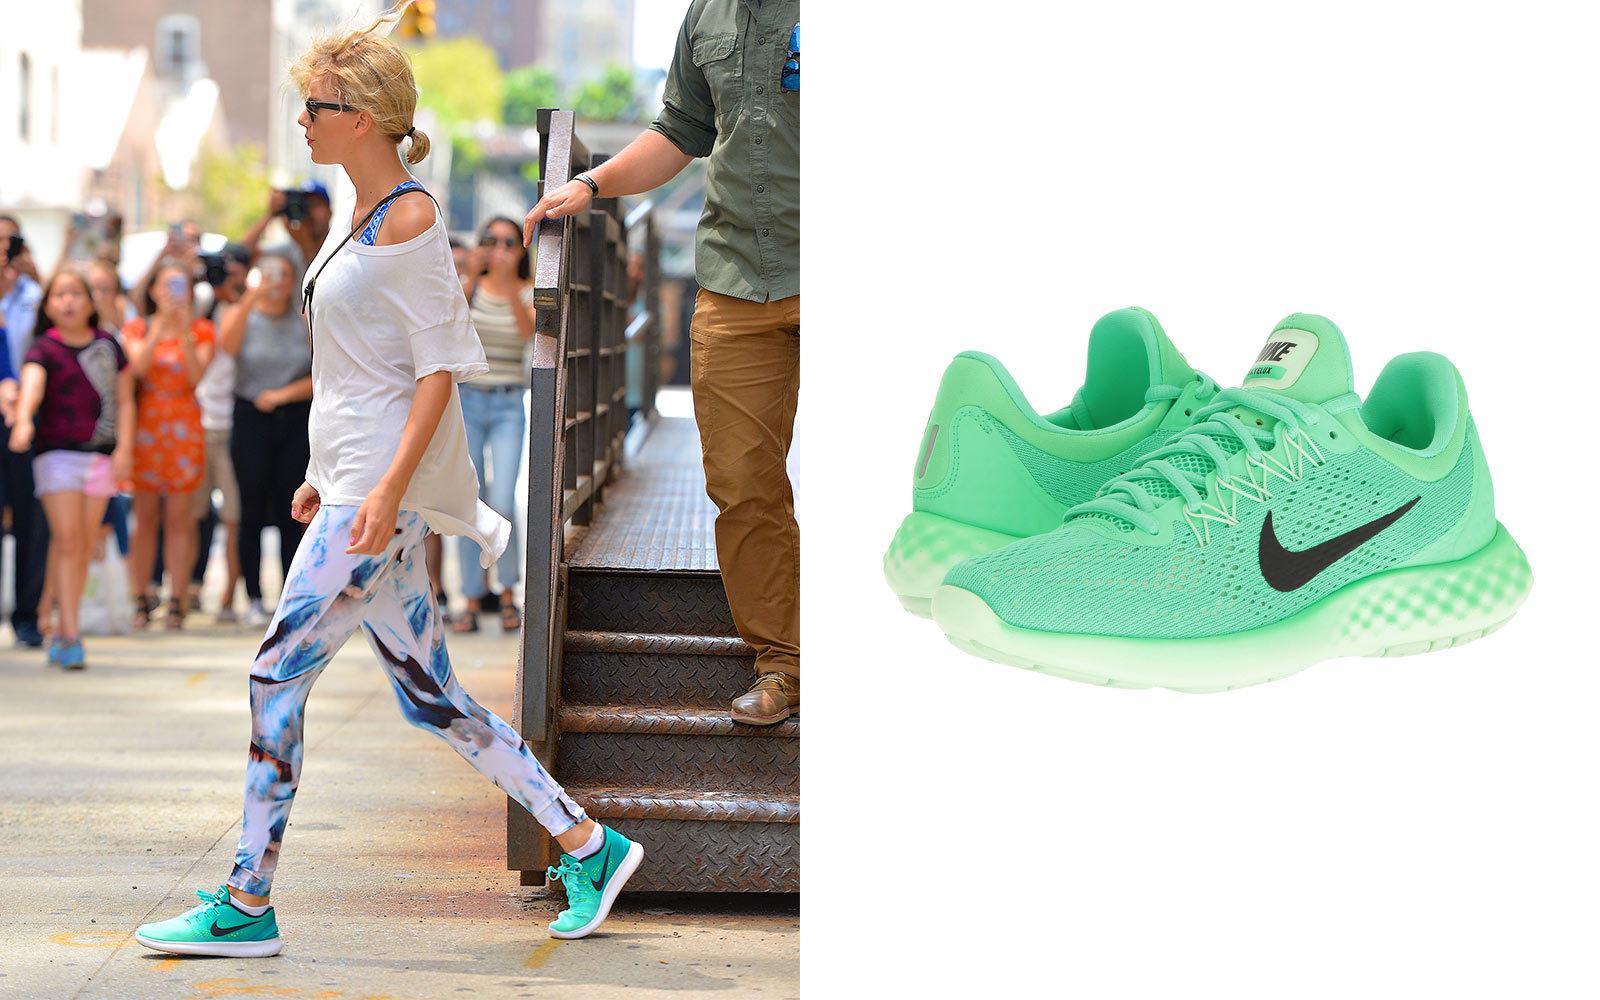 Taylor Swift in Nike sneakers